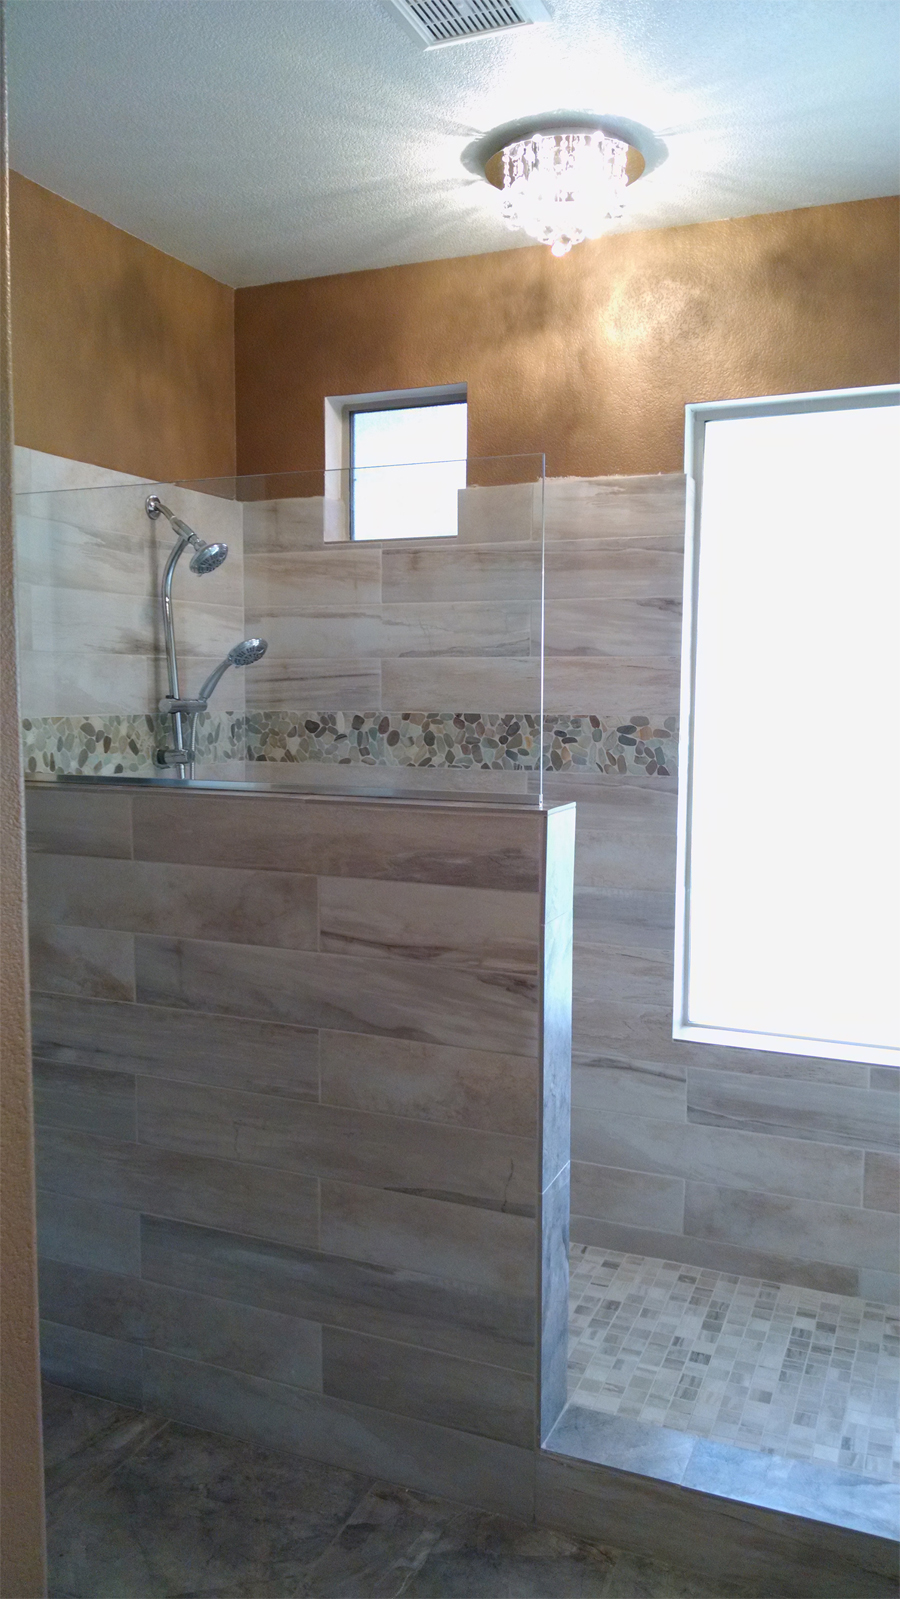 Phoenix Bathroom Remodel Simple Home Remodeling Phoenix  Champion Remodeling Llc. Design Inspiration